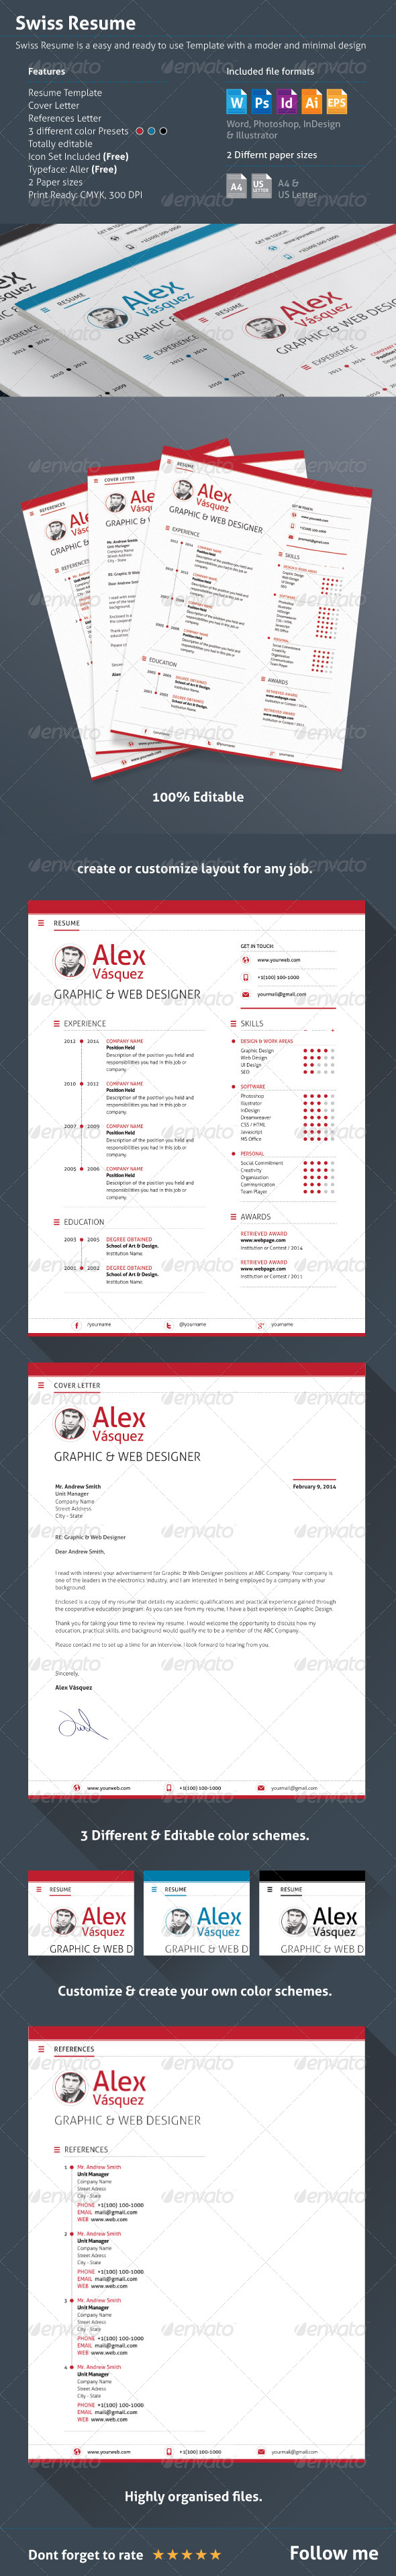 GraphicRiver 3 Piece Swiss Style Resume CV 6972560